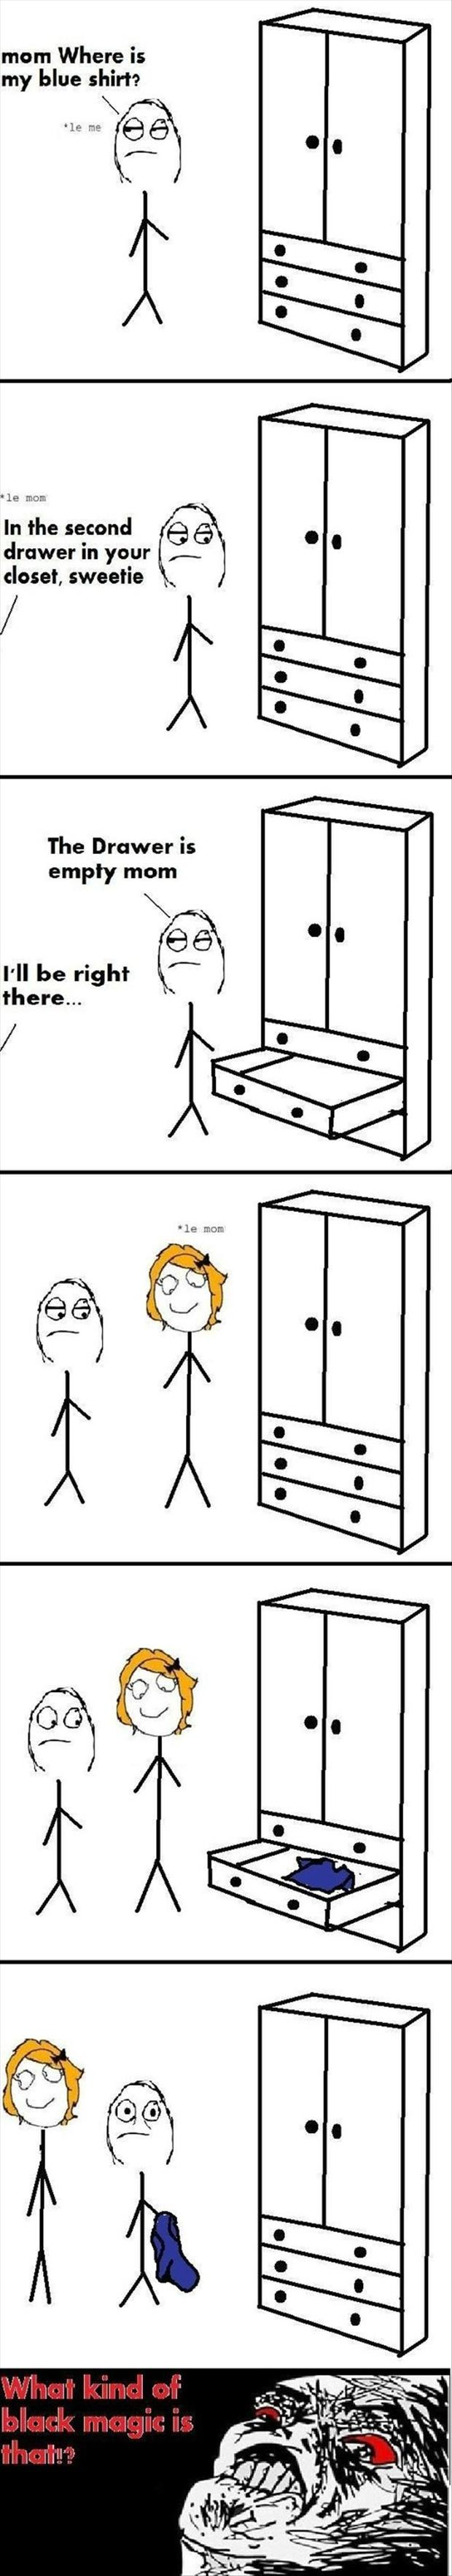 mom knows where things are funny rage comics